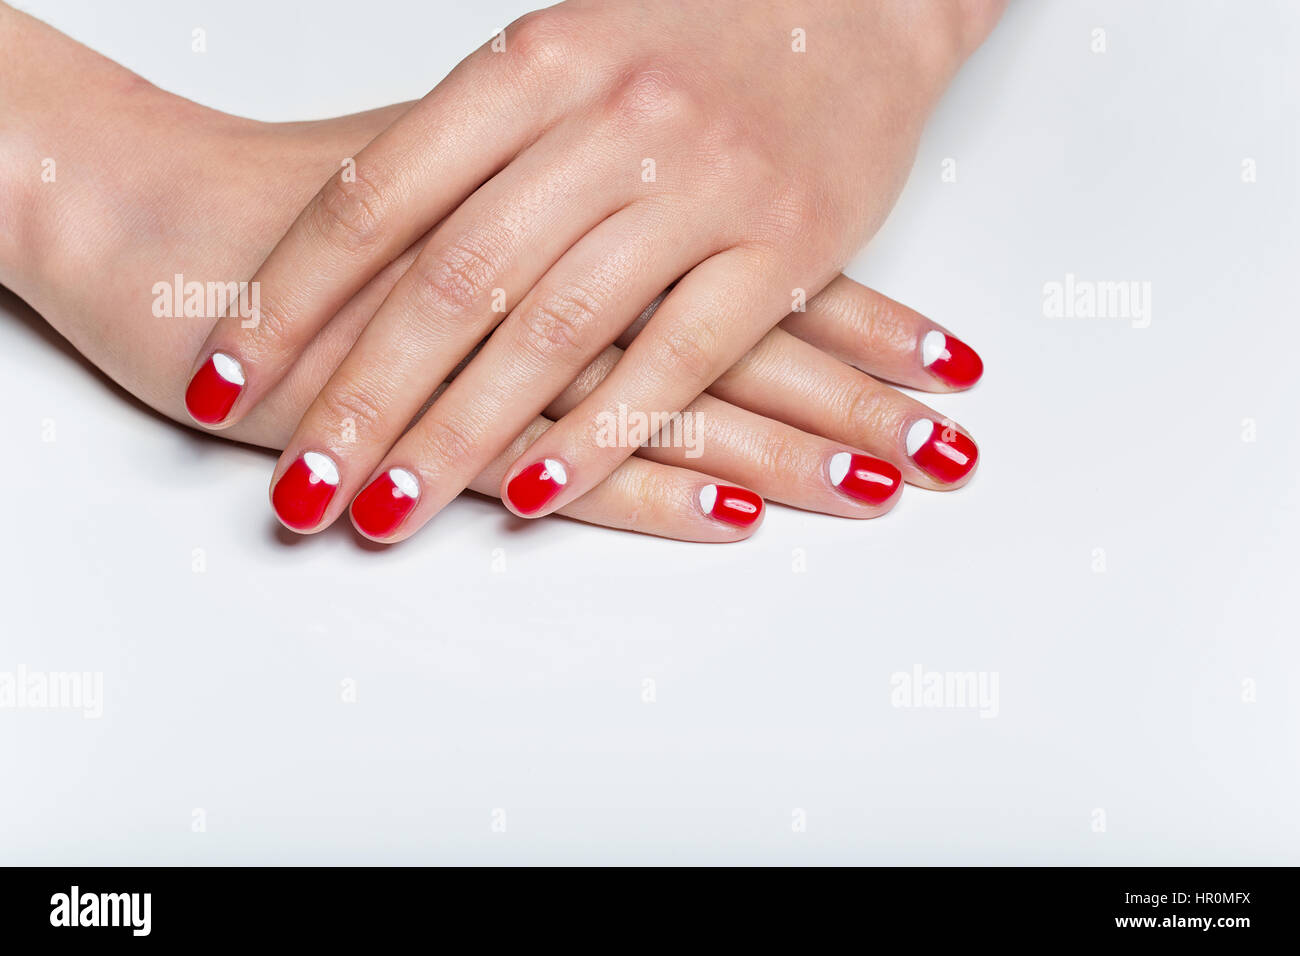 Female hands with red and white nails Stock Photo: 134625790 - Alamy